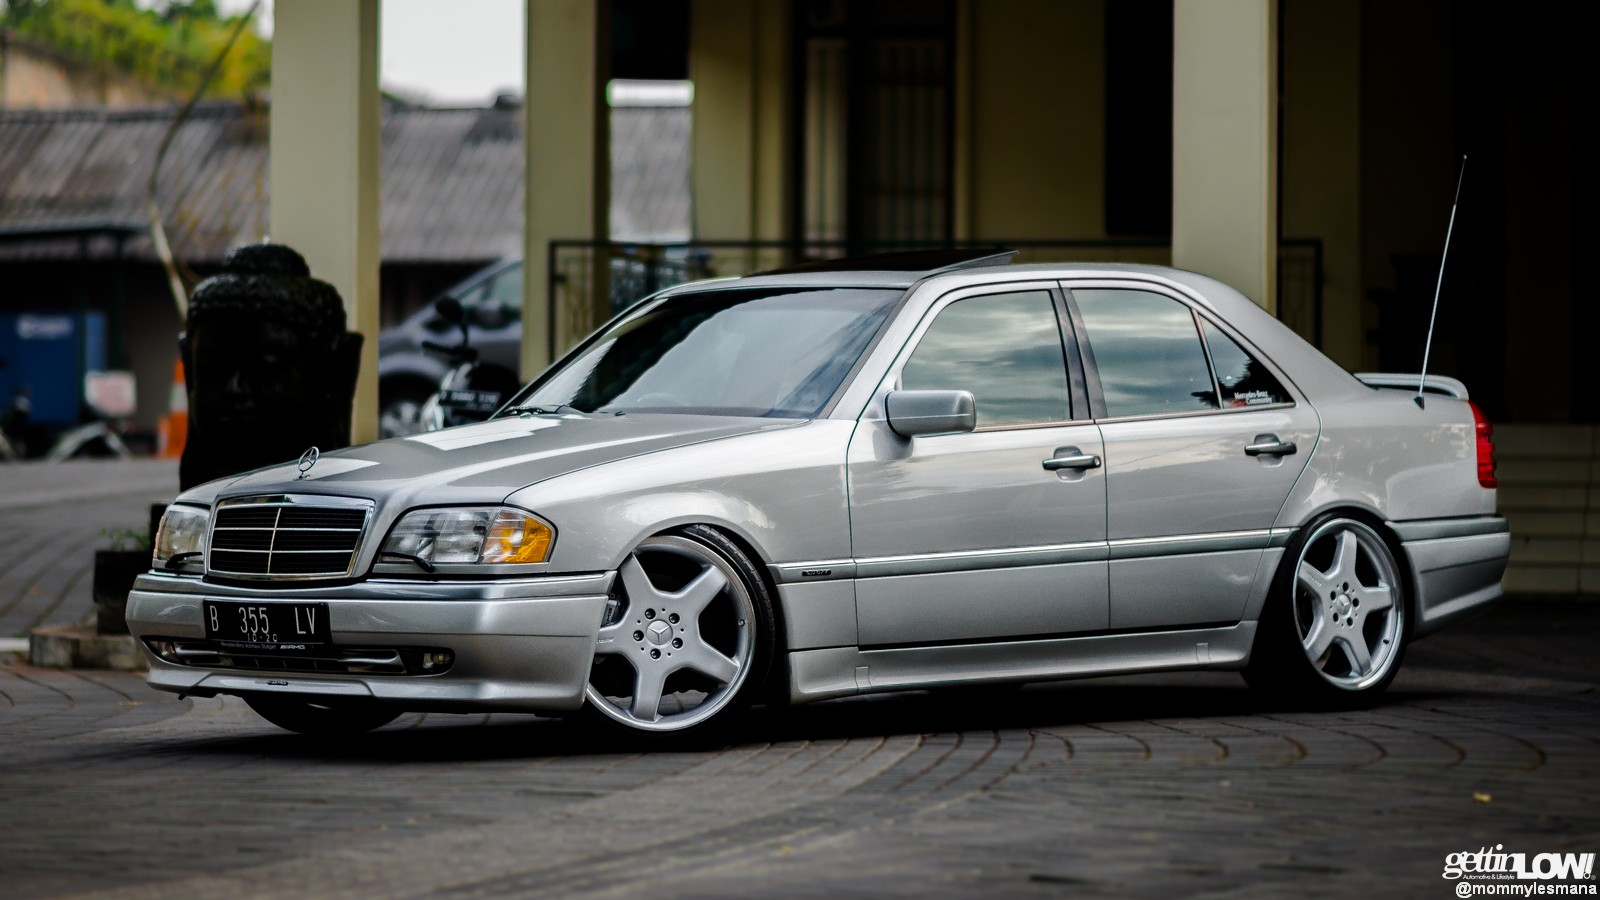 Wallpaper Mobil Sport Hd Gettinlow Trey Coesno 1995 Mercedes Benz W202 C200 Full Amg